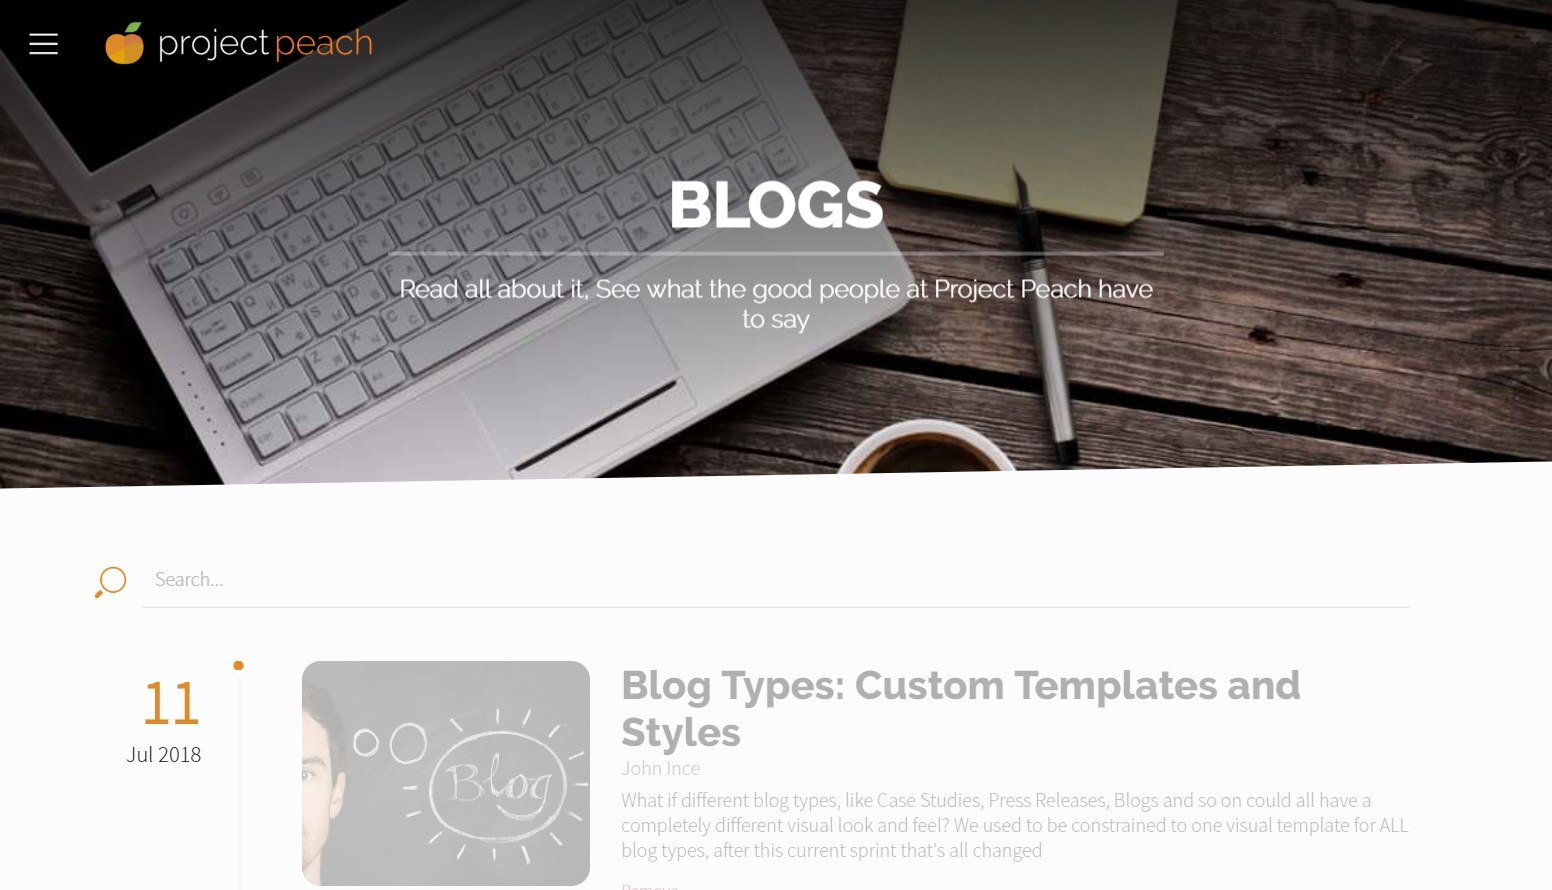 Blog Types: Custom Templates and Styles